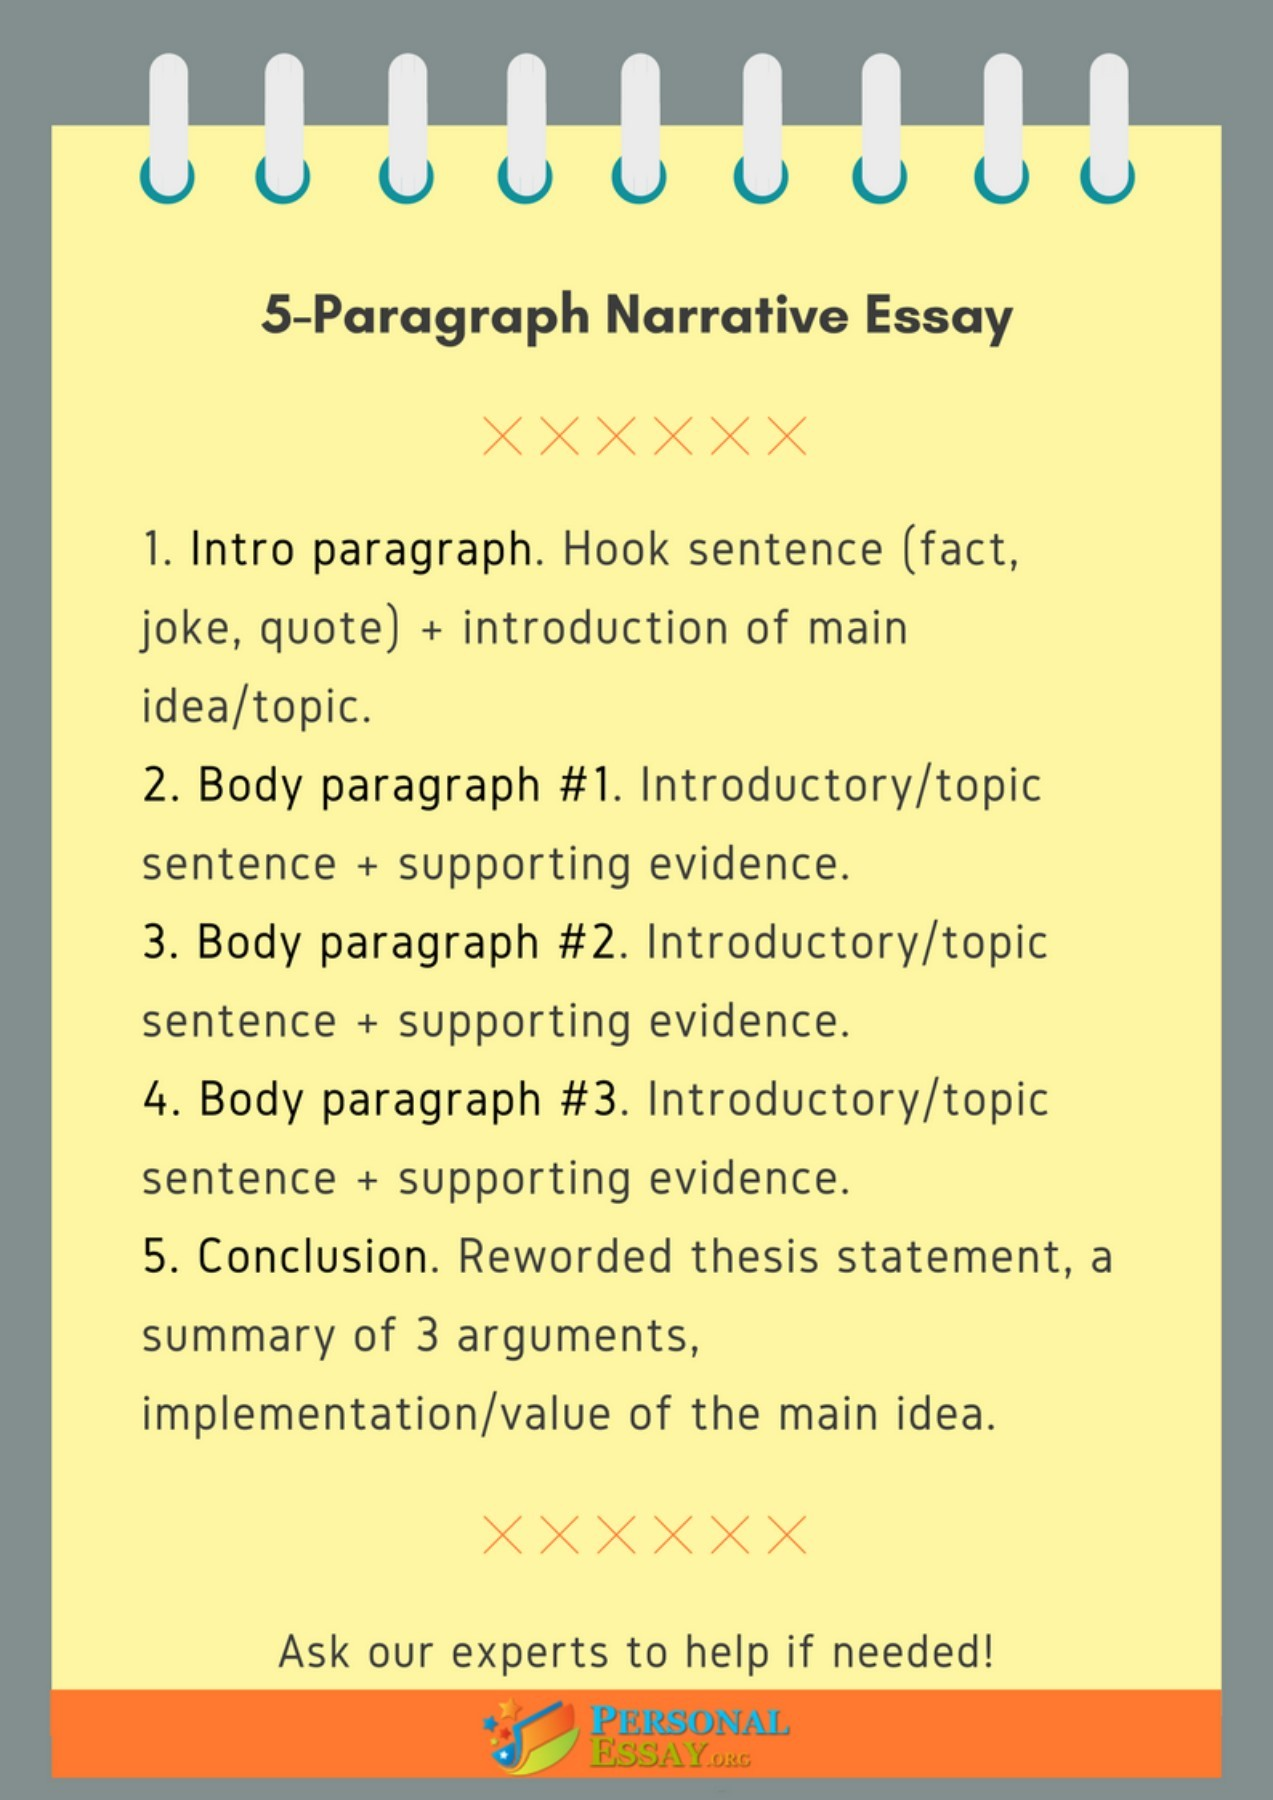 5 Paragraph Narrative Essay Outline